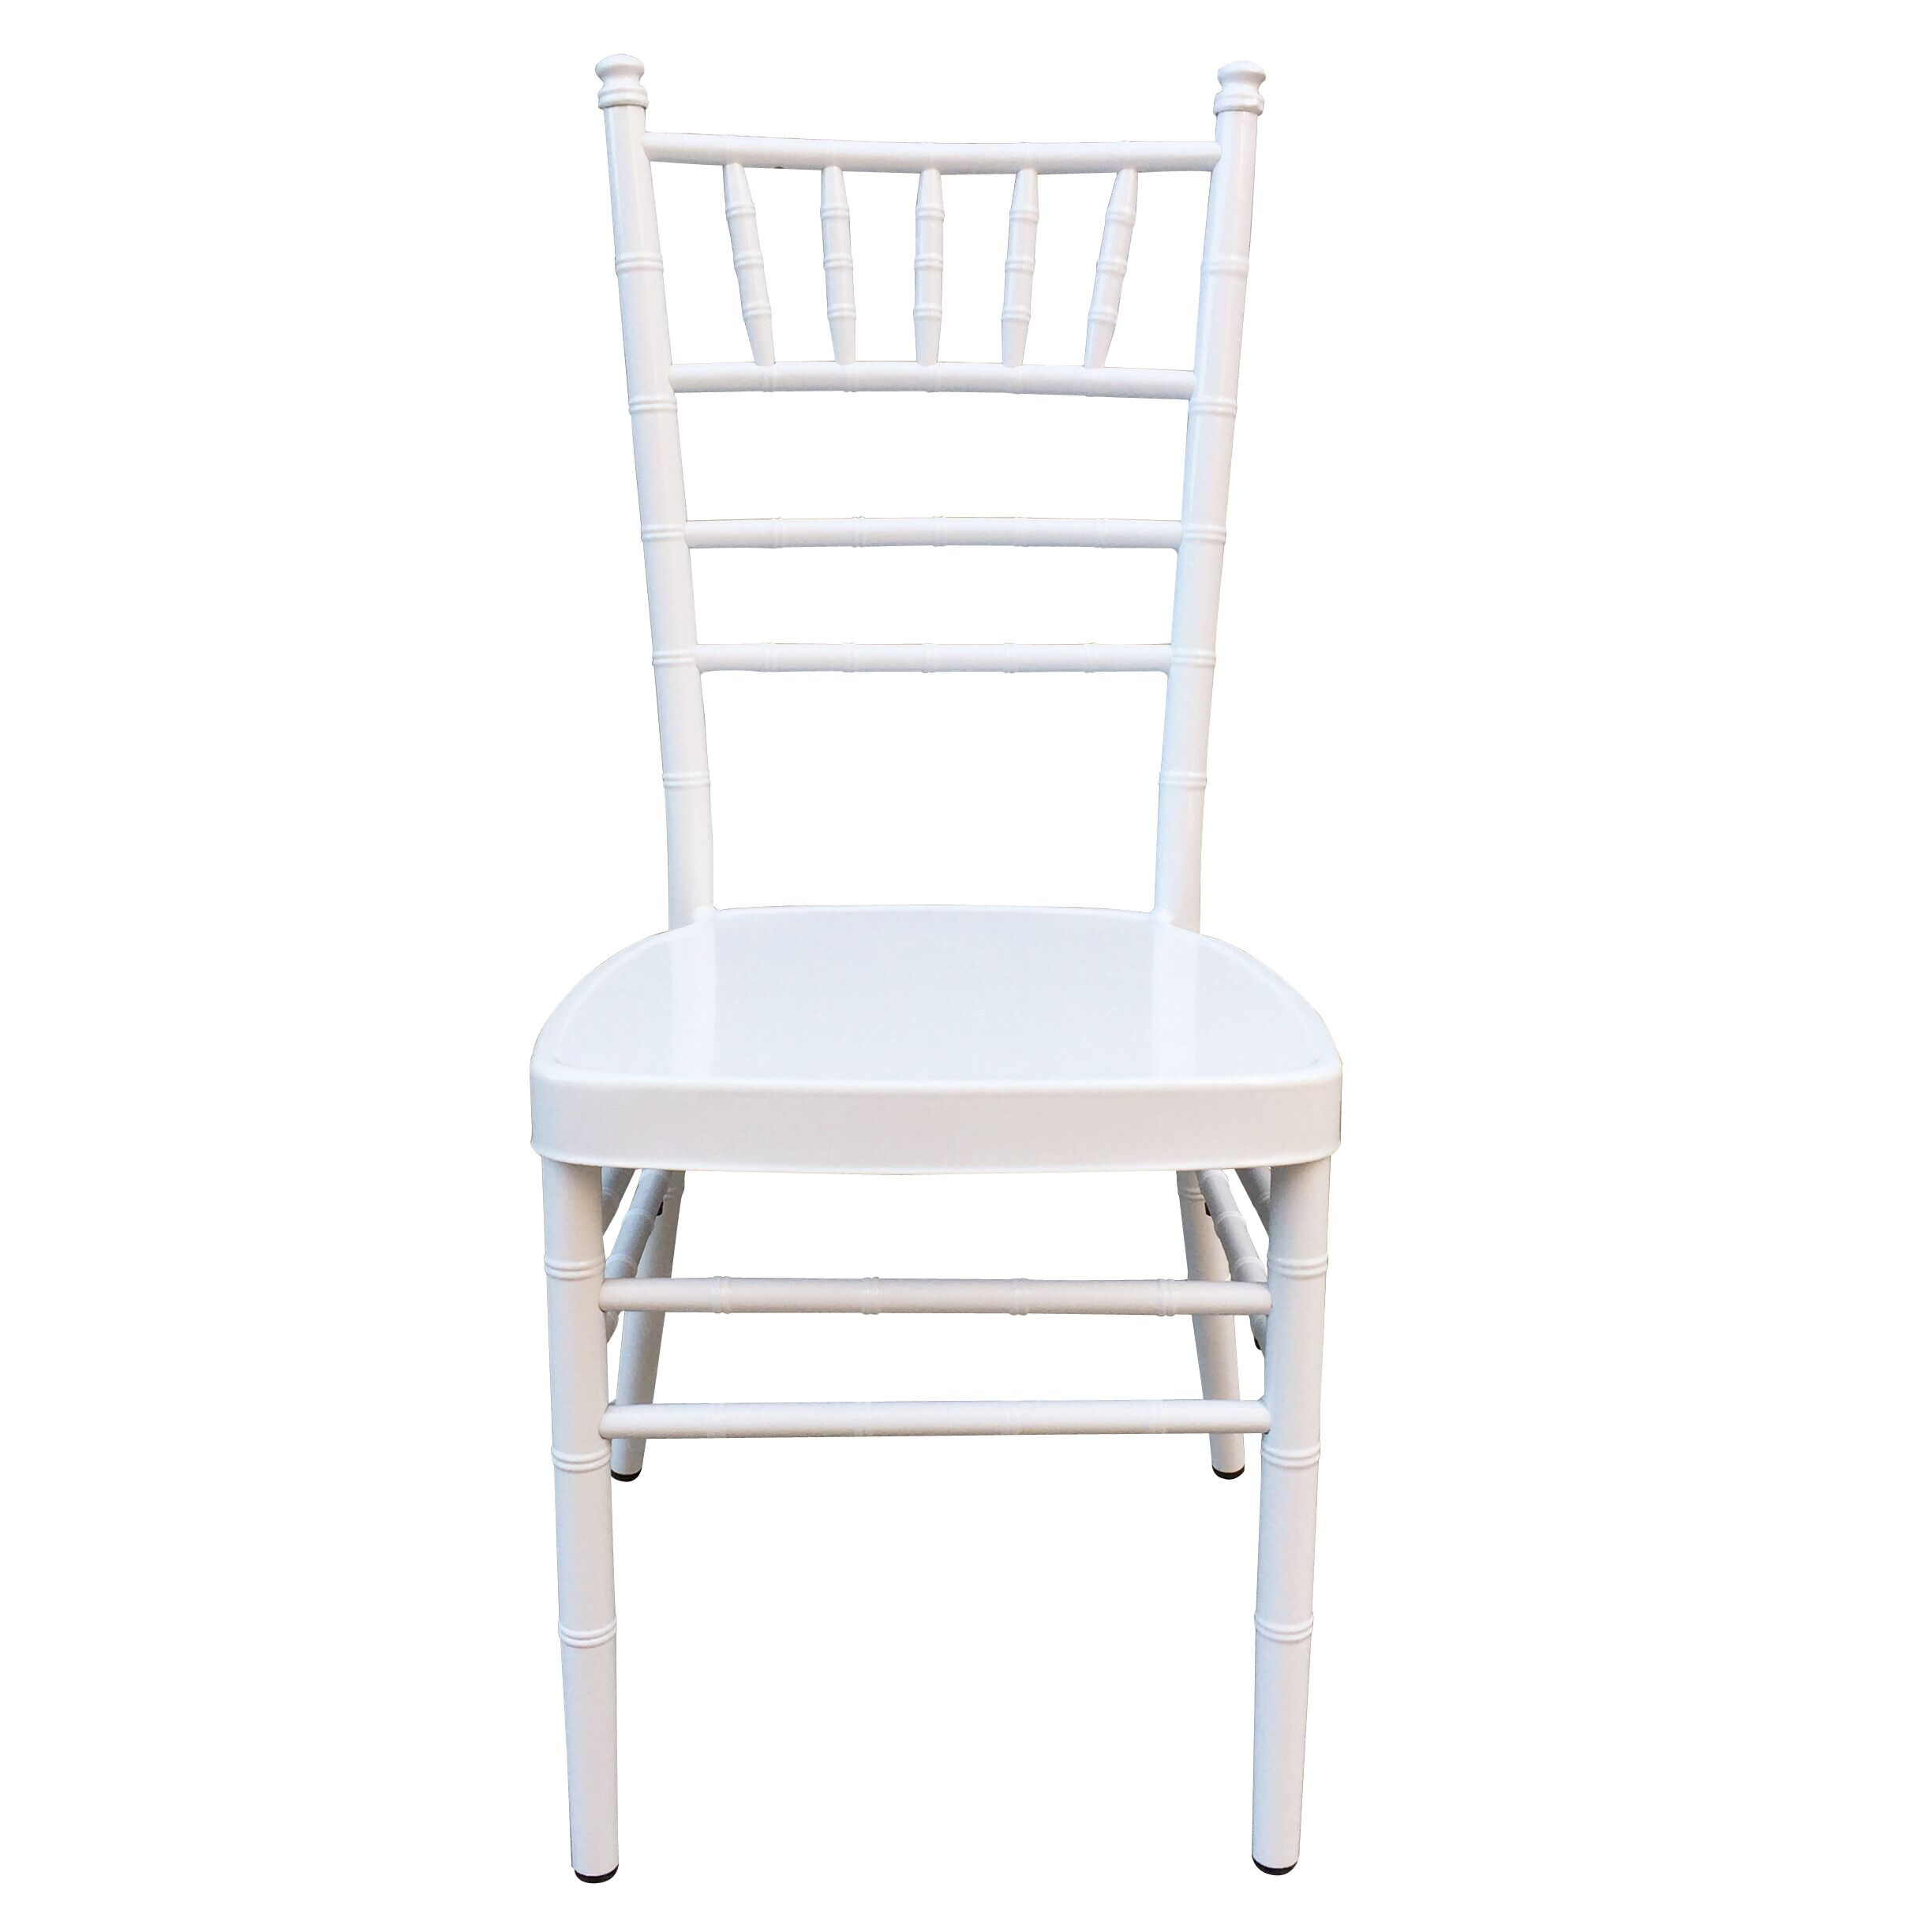 OEM Factory for Church Folding Auditorium Chairs -